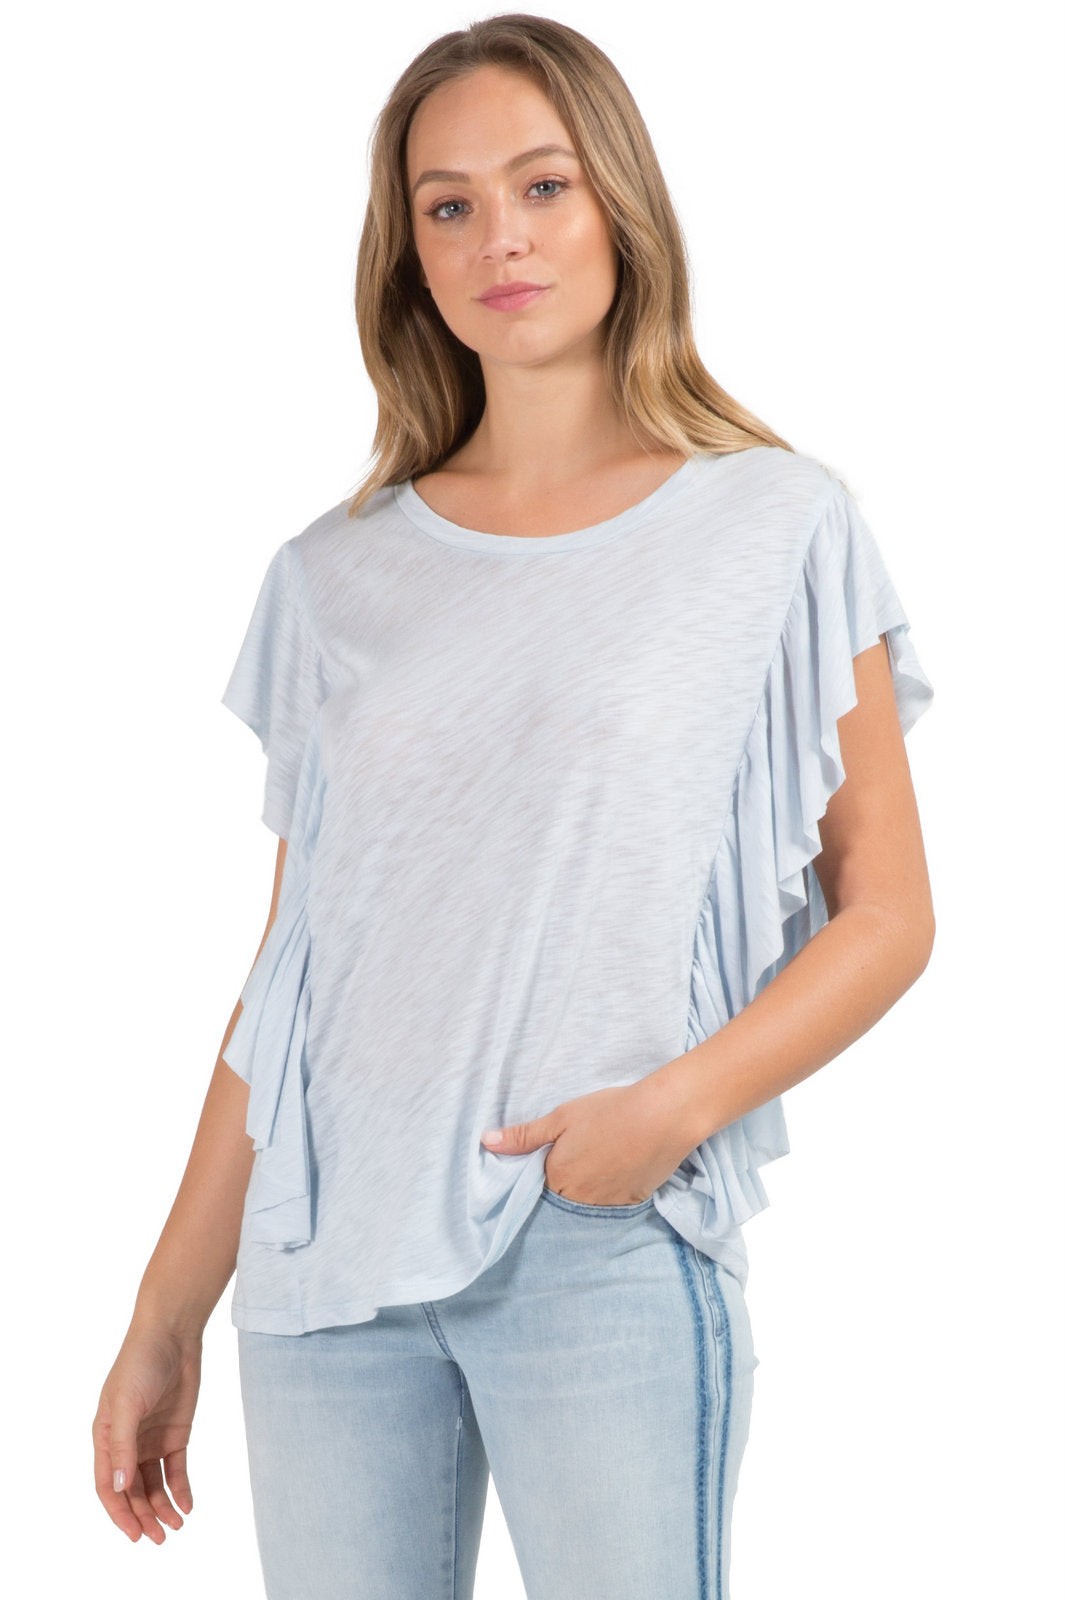 Top with Ruffled Layered Sides